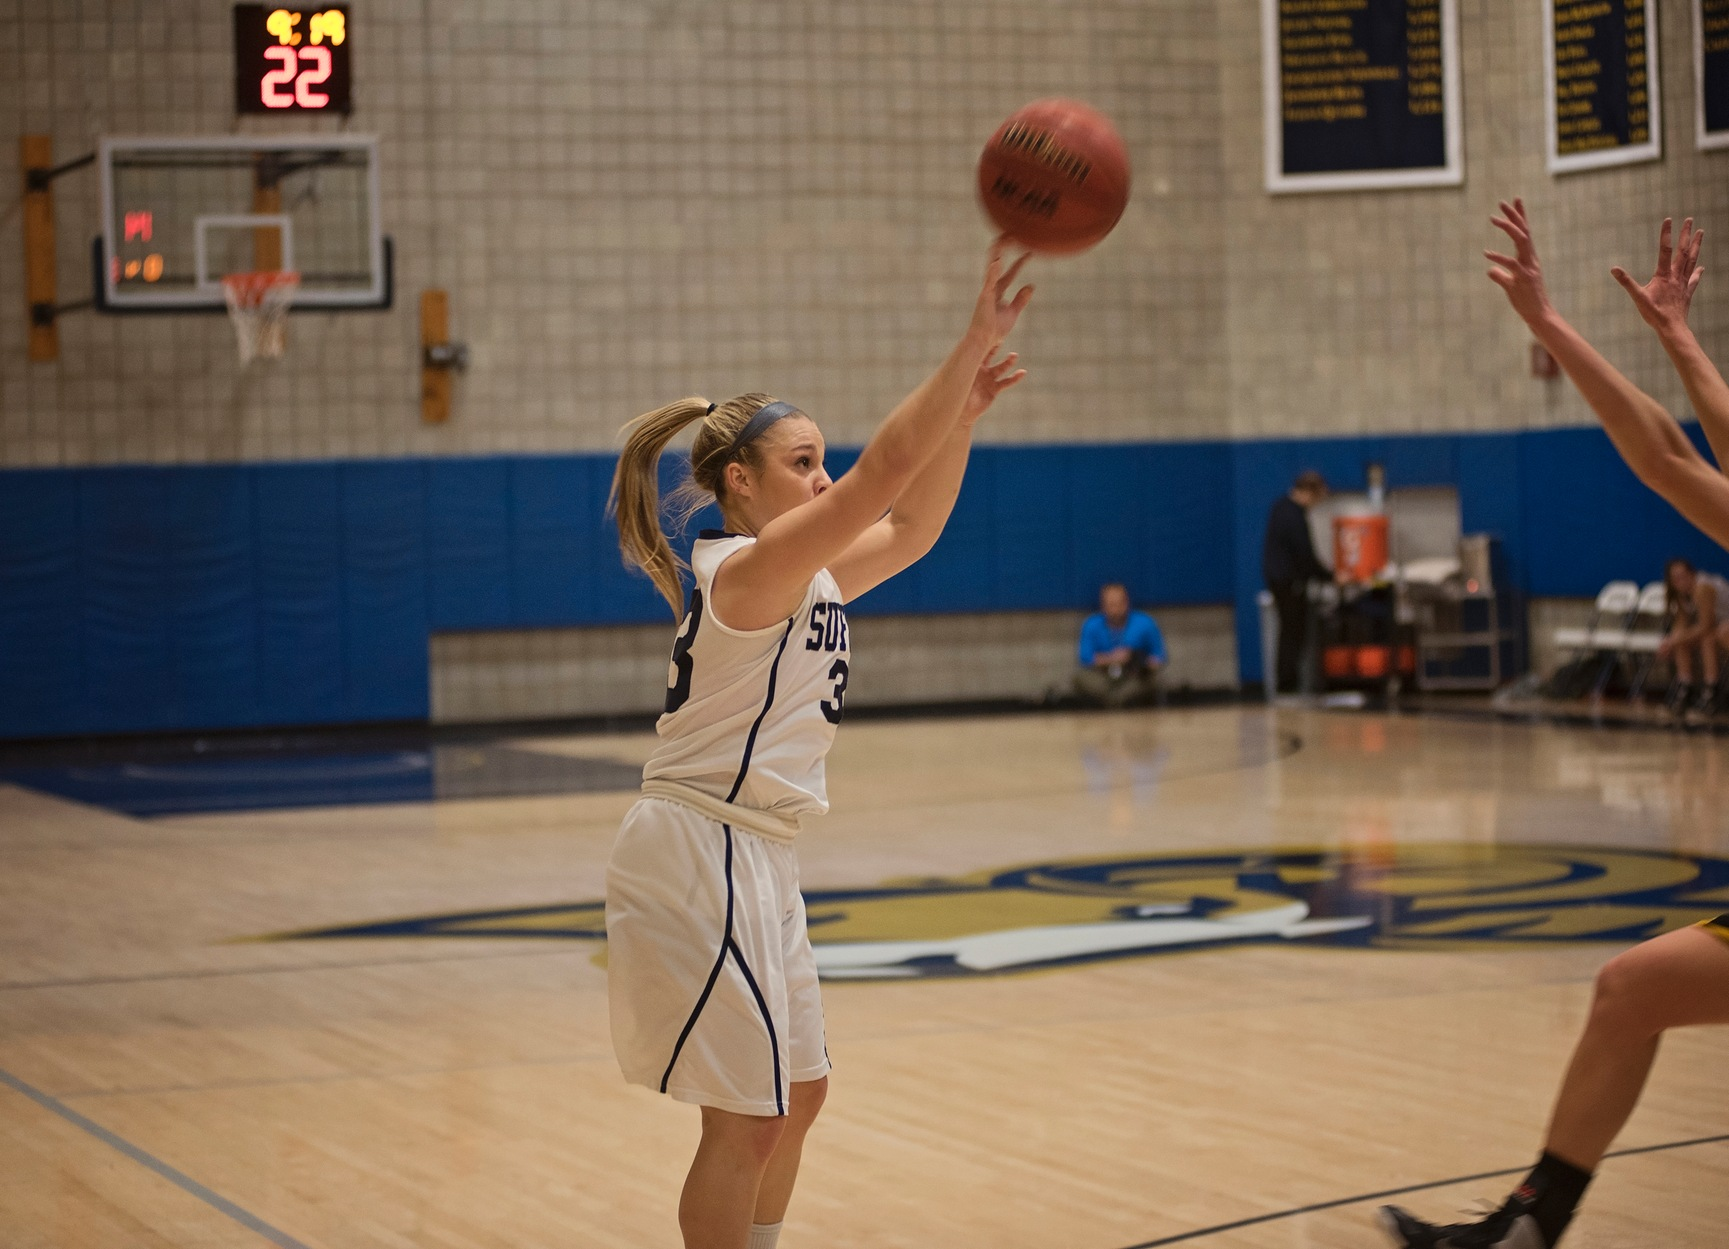 Women's Basketball Runs Streak to Five, Upends Mt. Ida, 81-50